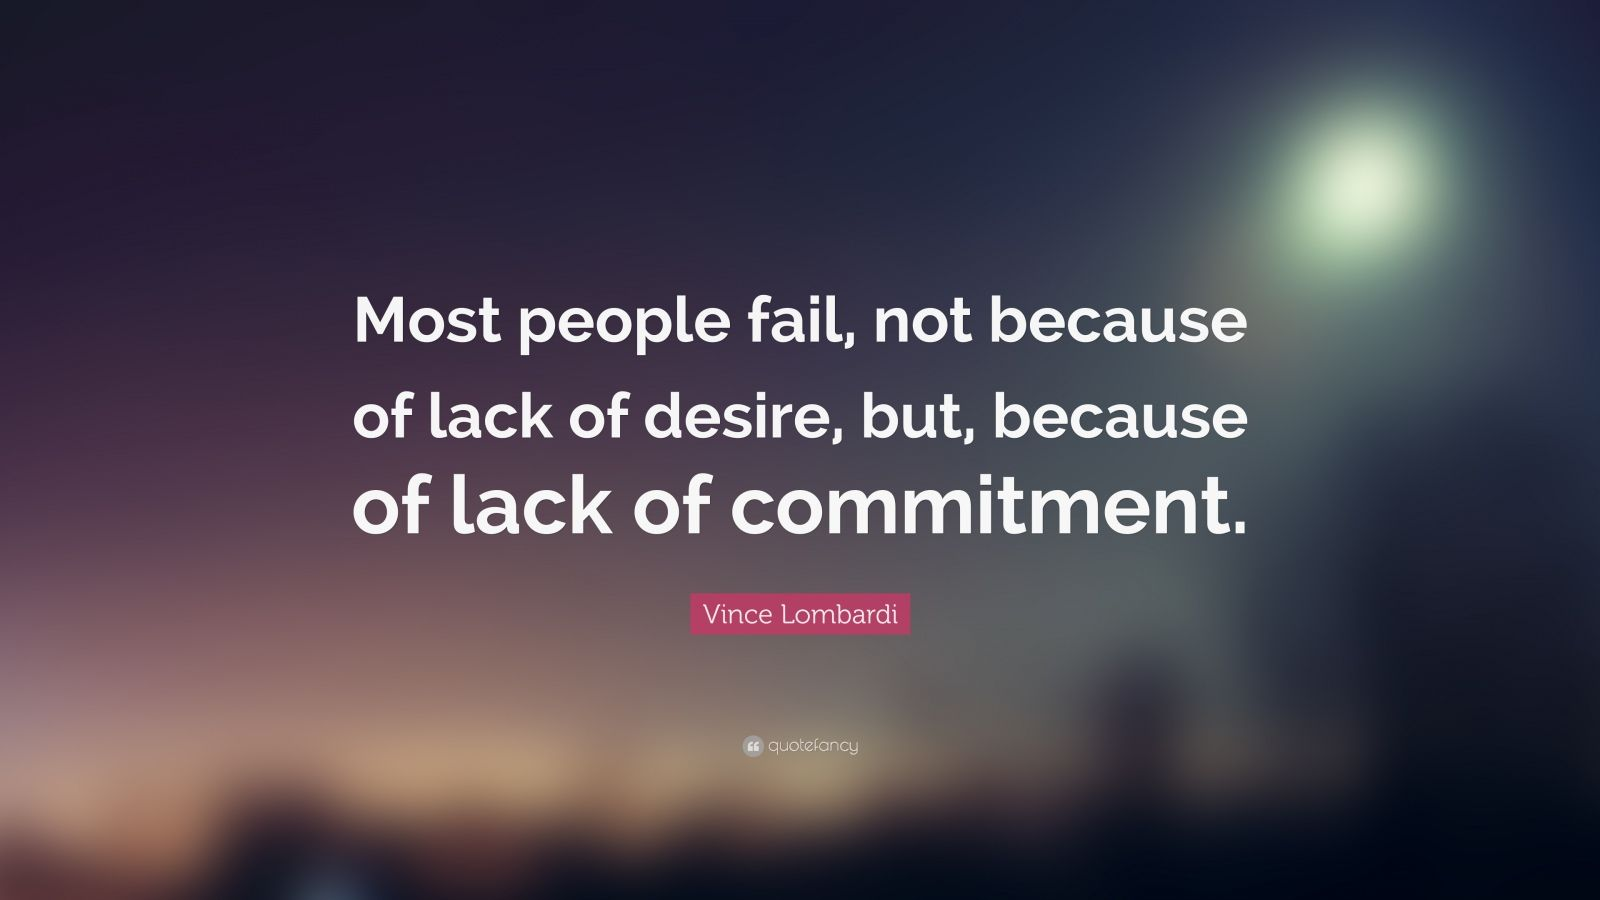 """Desire Quotes: """"Most people fail, not because of lack of desire, but, because of lack of commitment."""" — Vince Lombardi"""